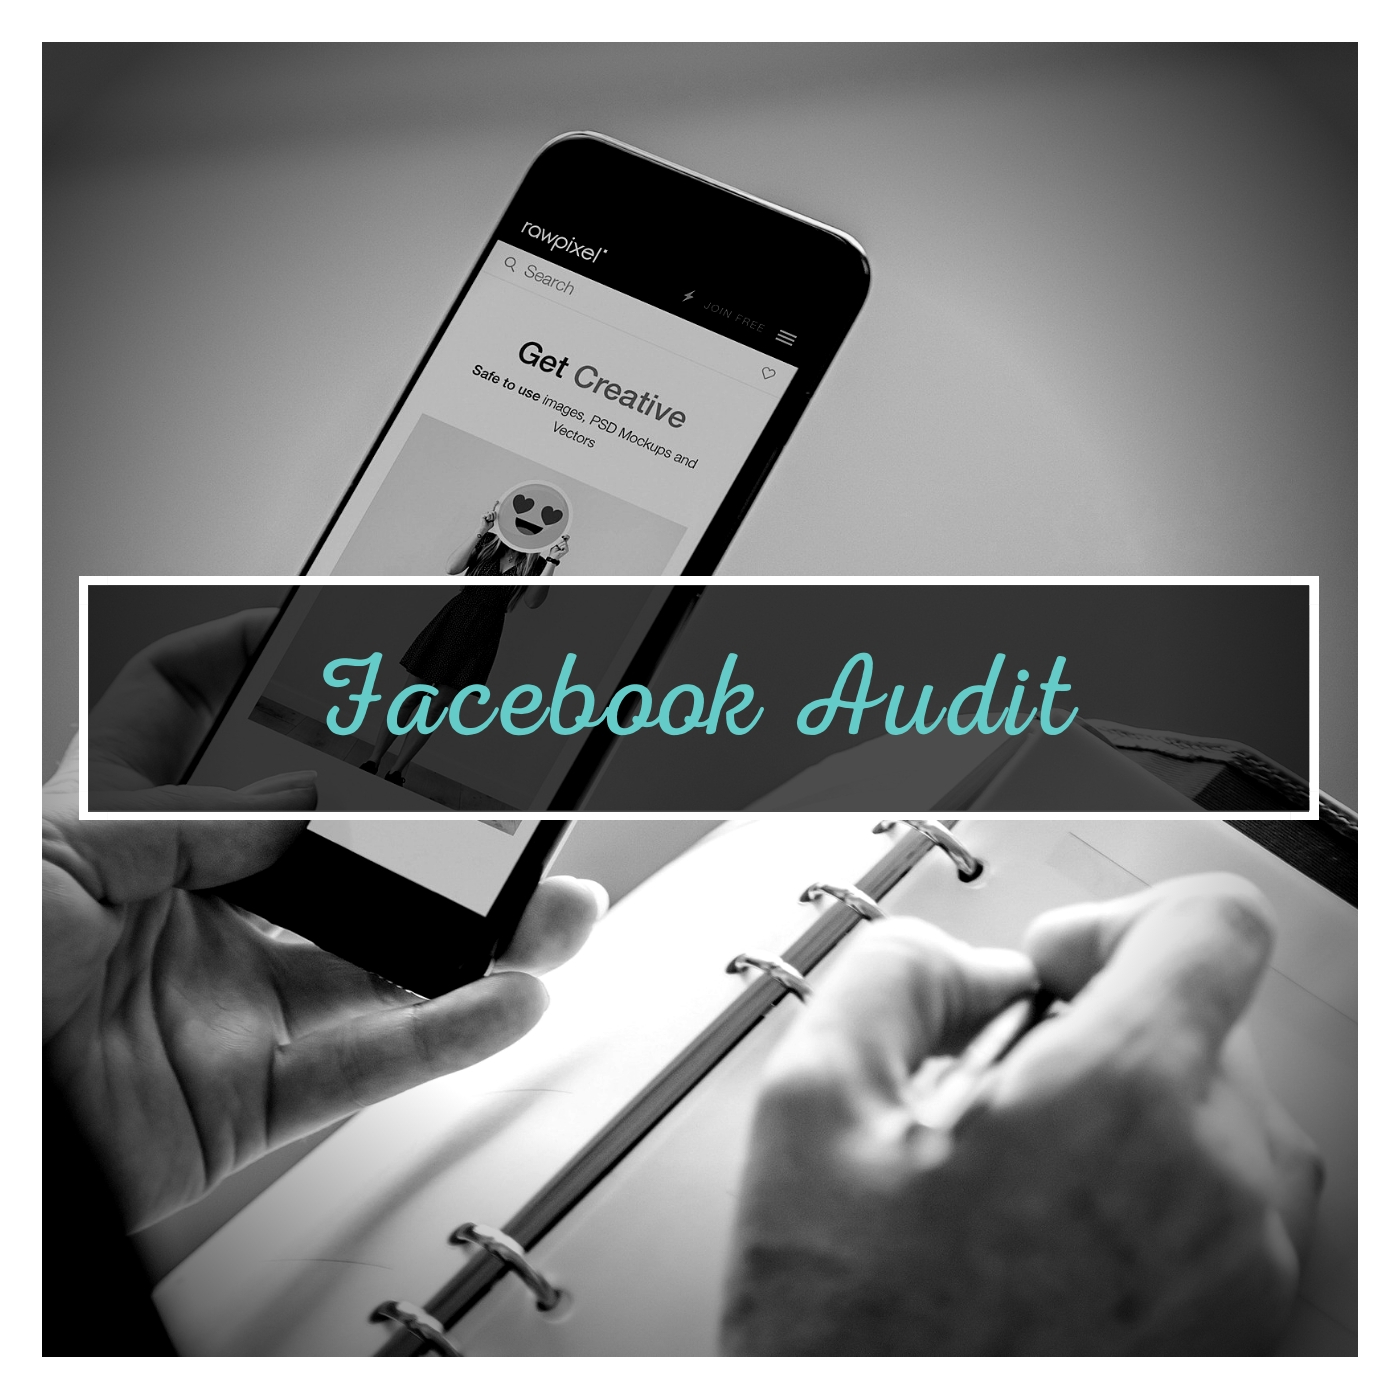 $250 - Have you set up your Facebook page, posted a few things, but just not getting the engagement you thought you would?You really want to manage your social media pages, but you just need a helping hand to get you on track.This package includes:· Mini audit of your Facebook page· Recommendations to improve it· Content suggestions